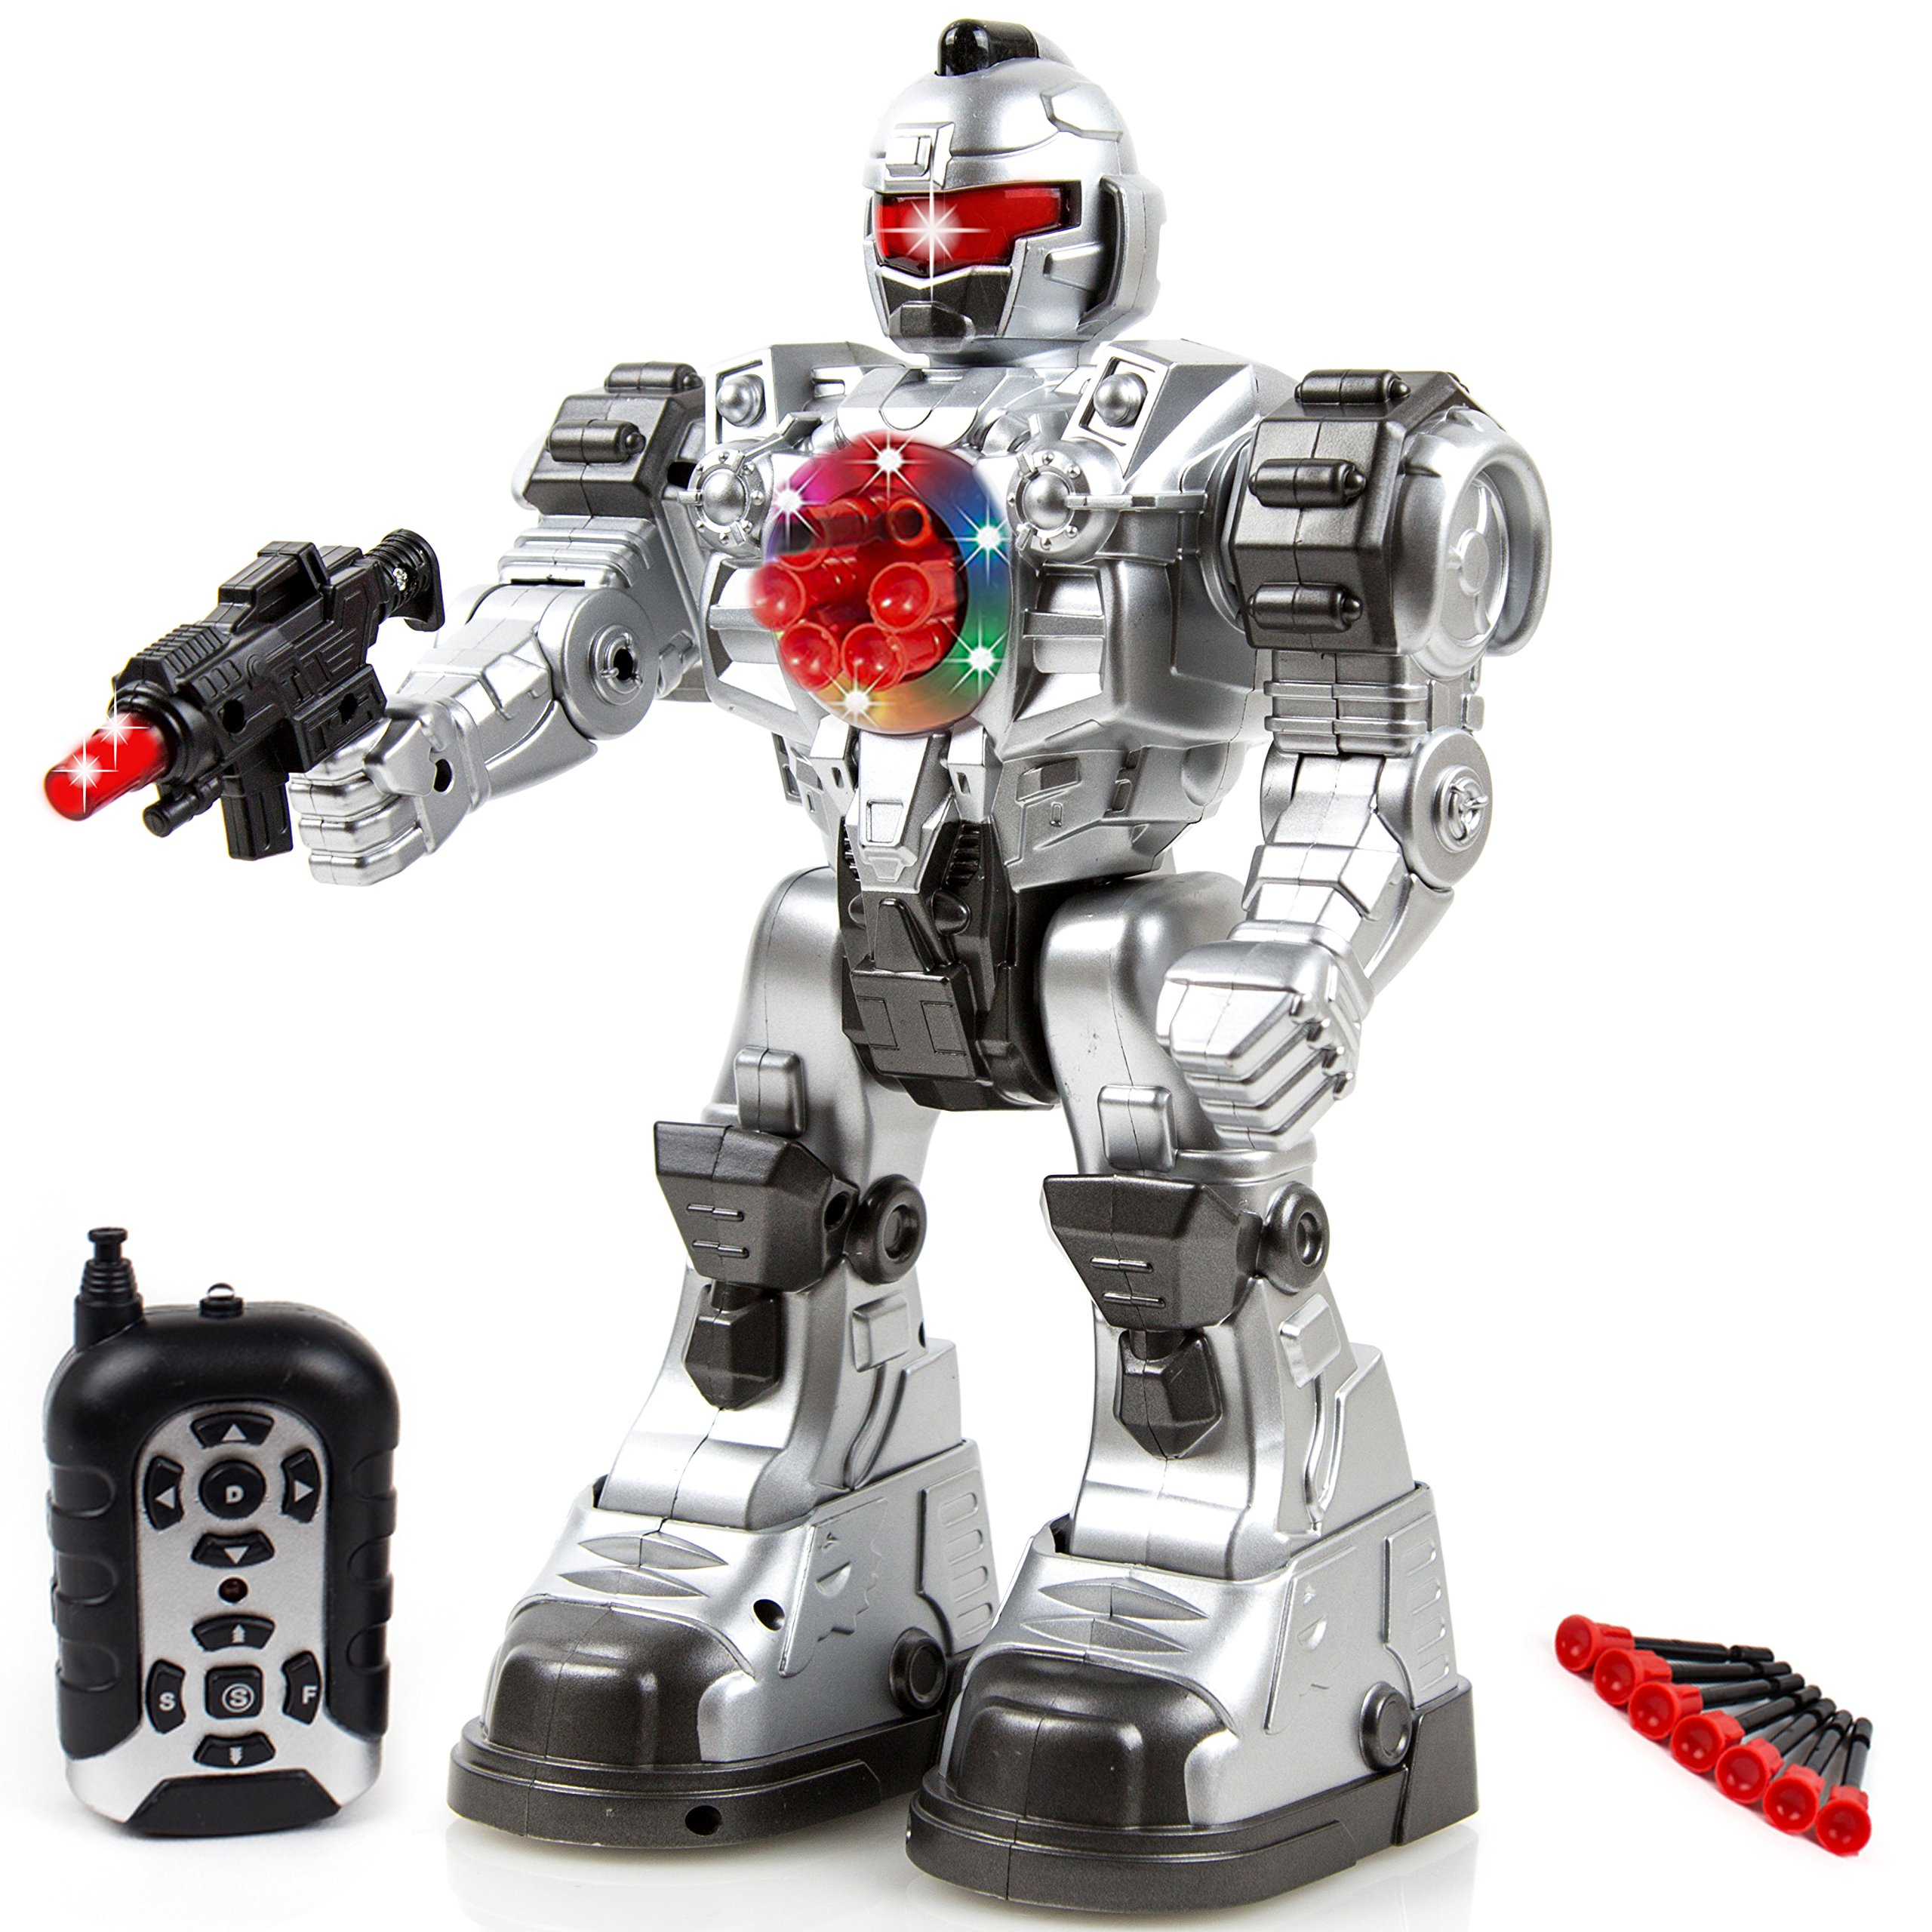 Toysery Remote Control Robot Police Toy for Kids Boys Girls with Flashing Lights Action Toy for Boys by Toysery (Image #1)